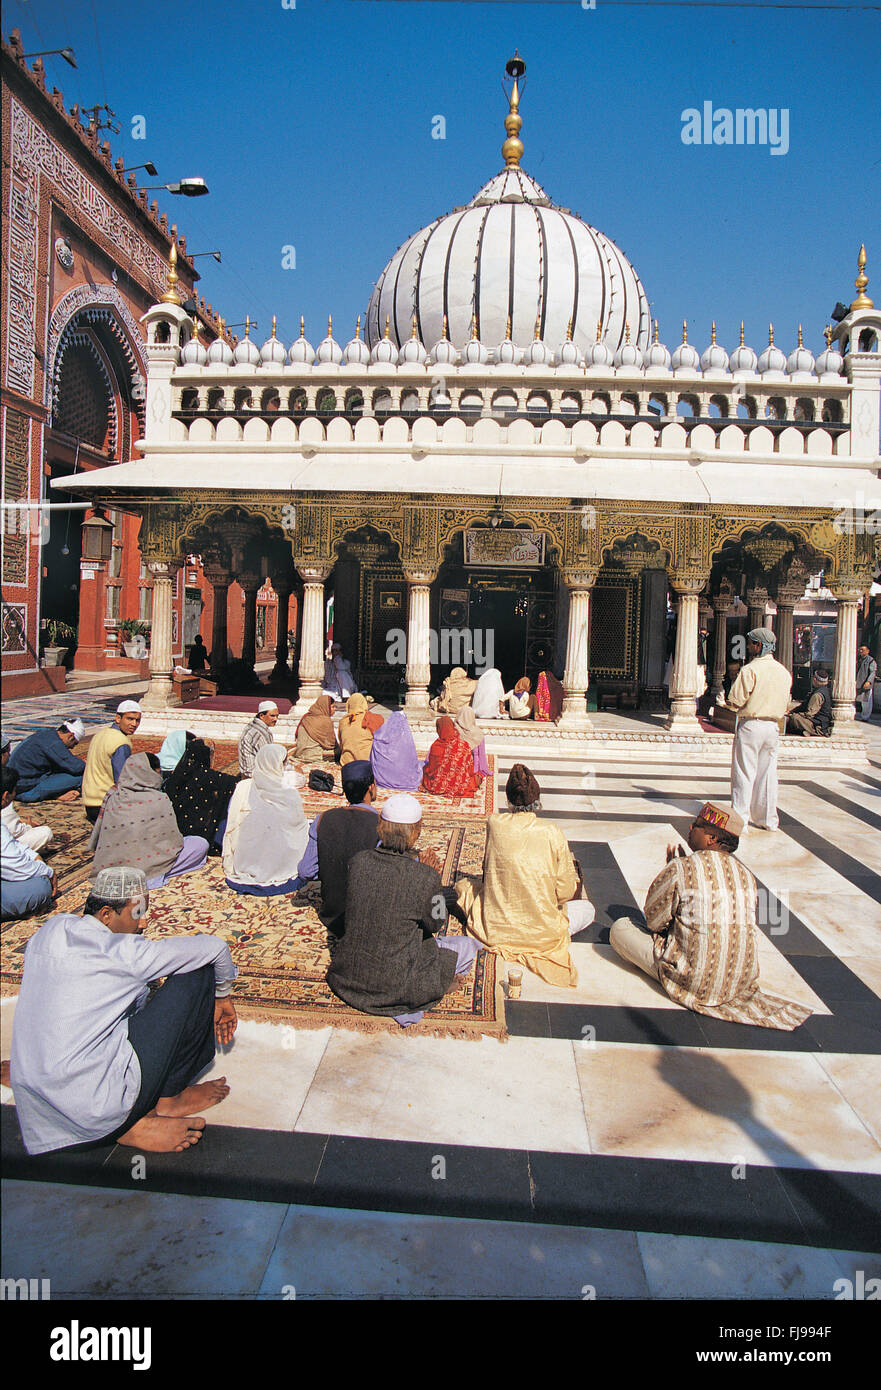 Ajmer sharif stock photos ajmer sharif stock images alamy ajmer sharif dargah ajmer rajasthan india asia stock image thecheapjerseys Image collections